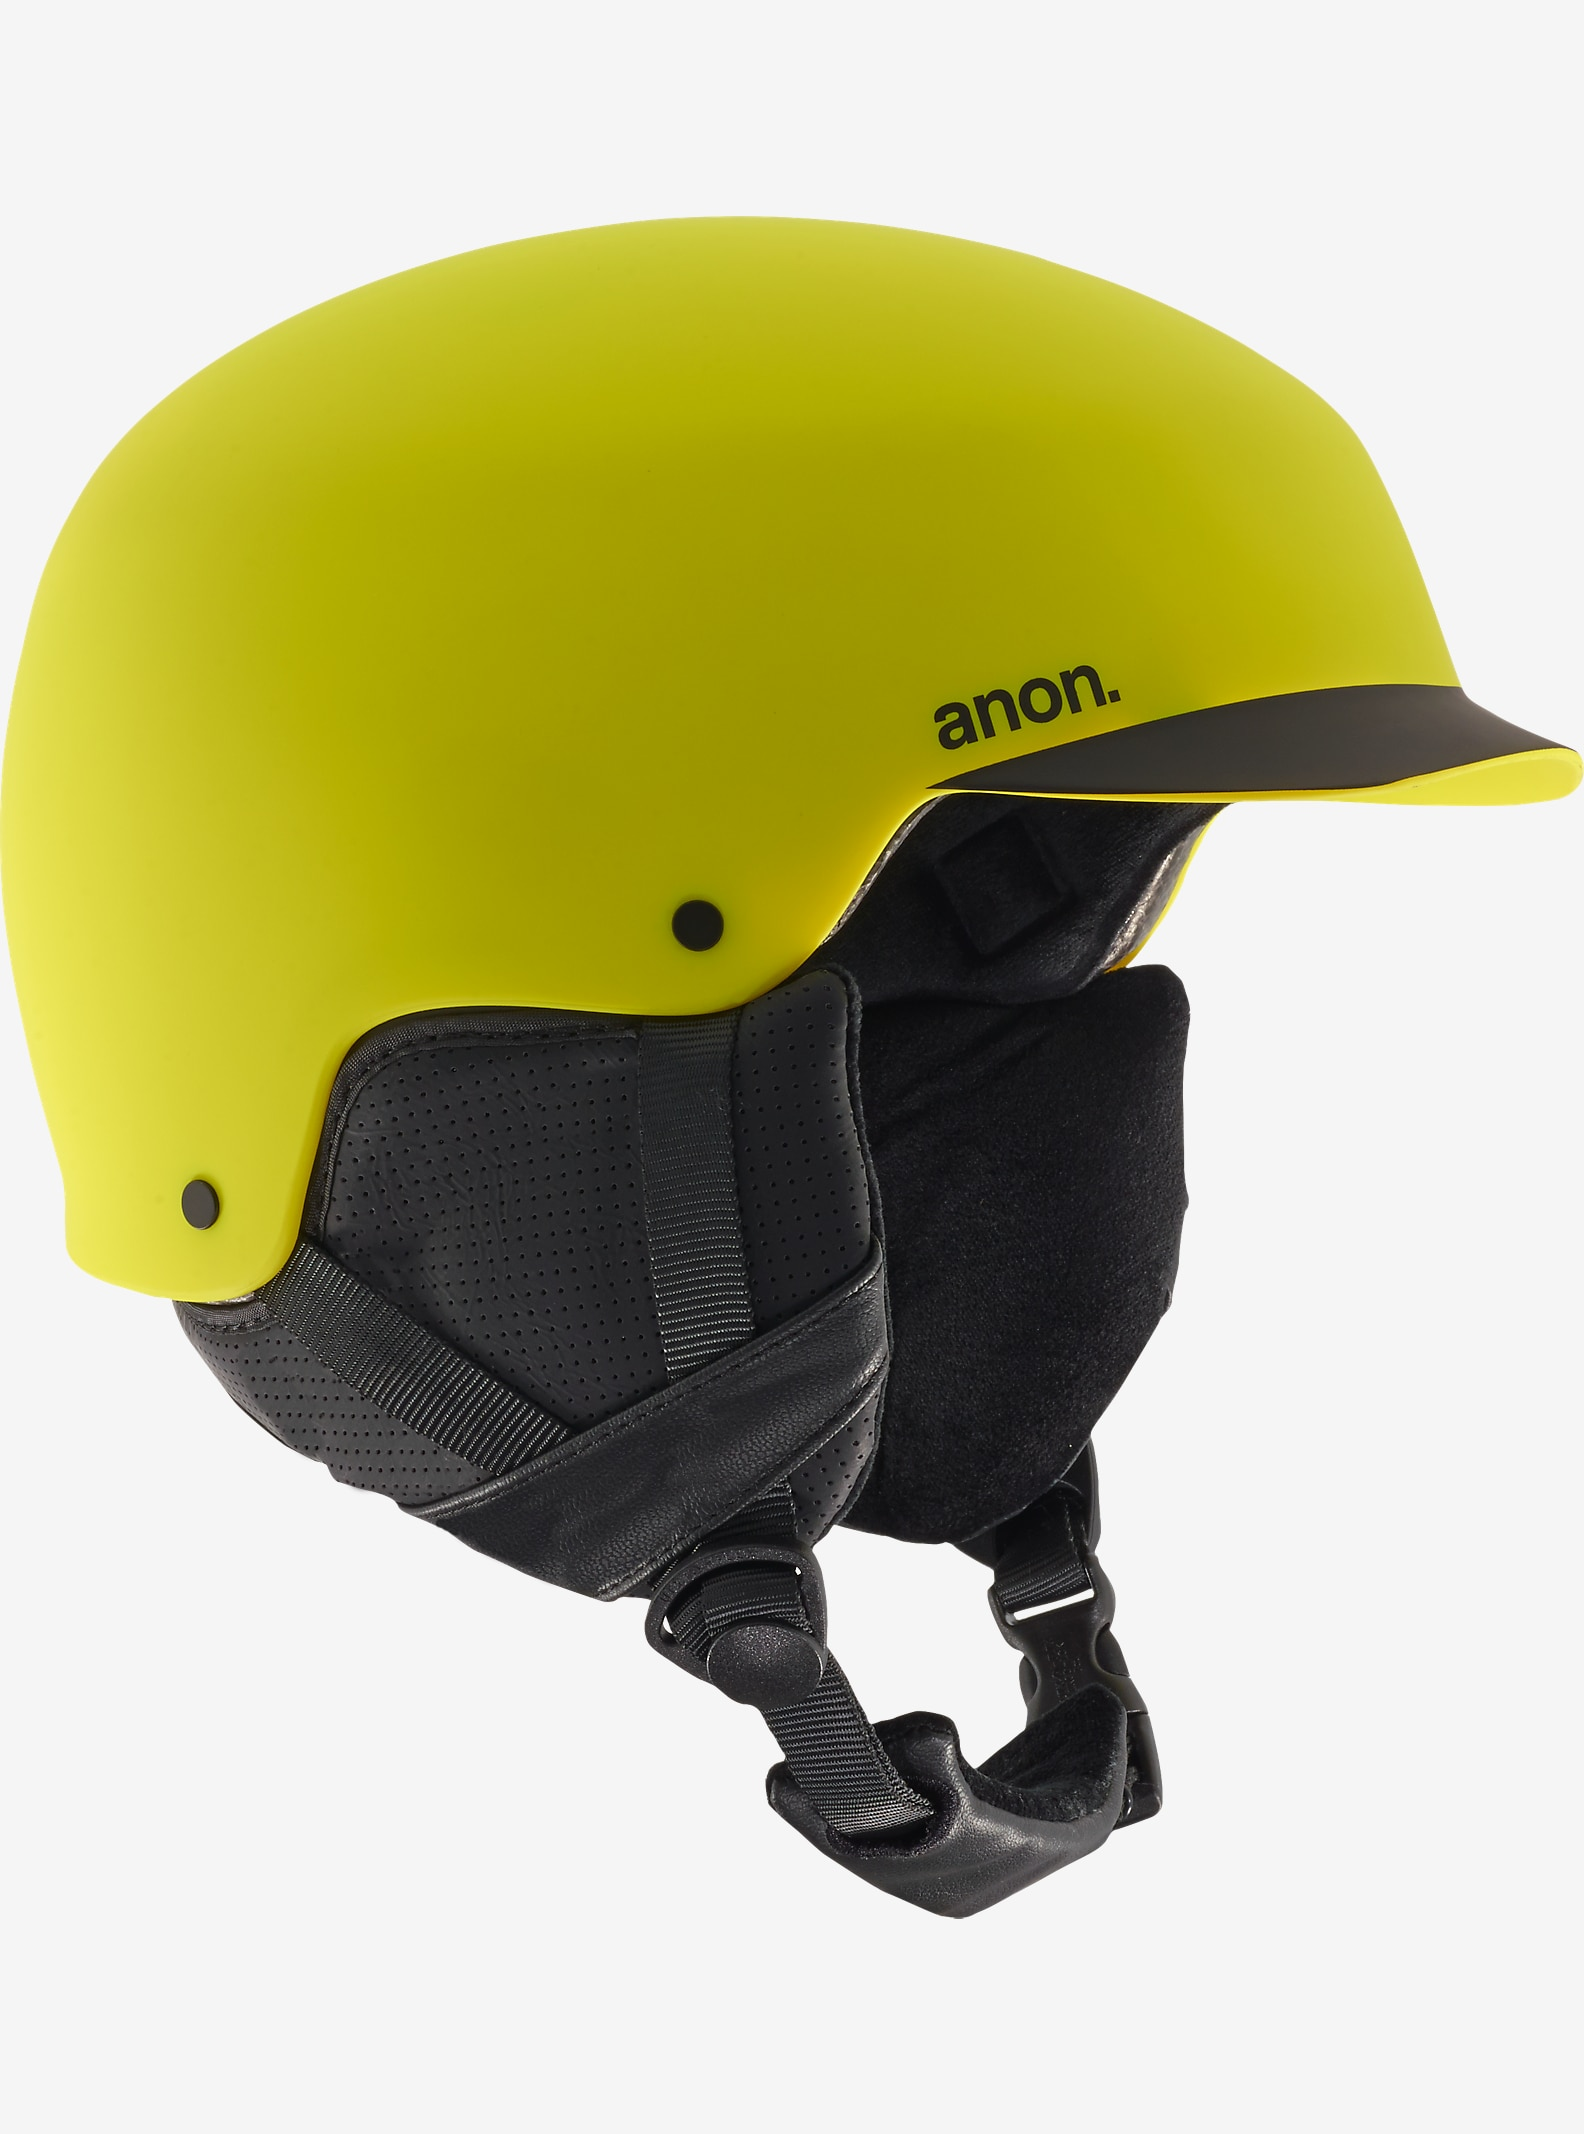 anon. Blitz Helm angezeigt in Yellow